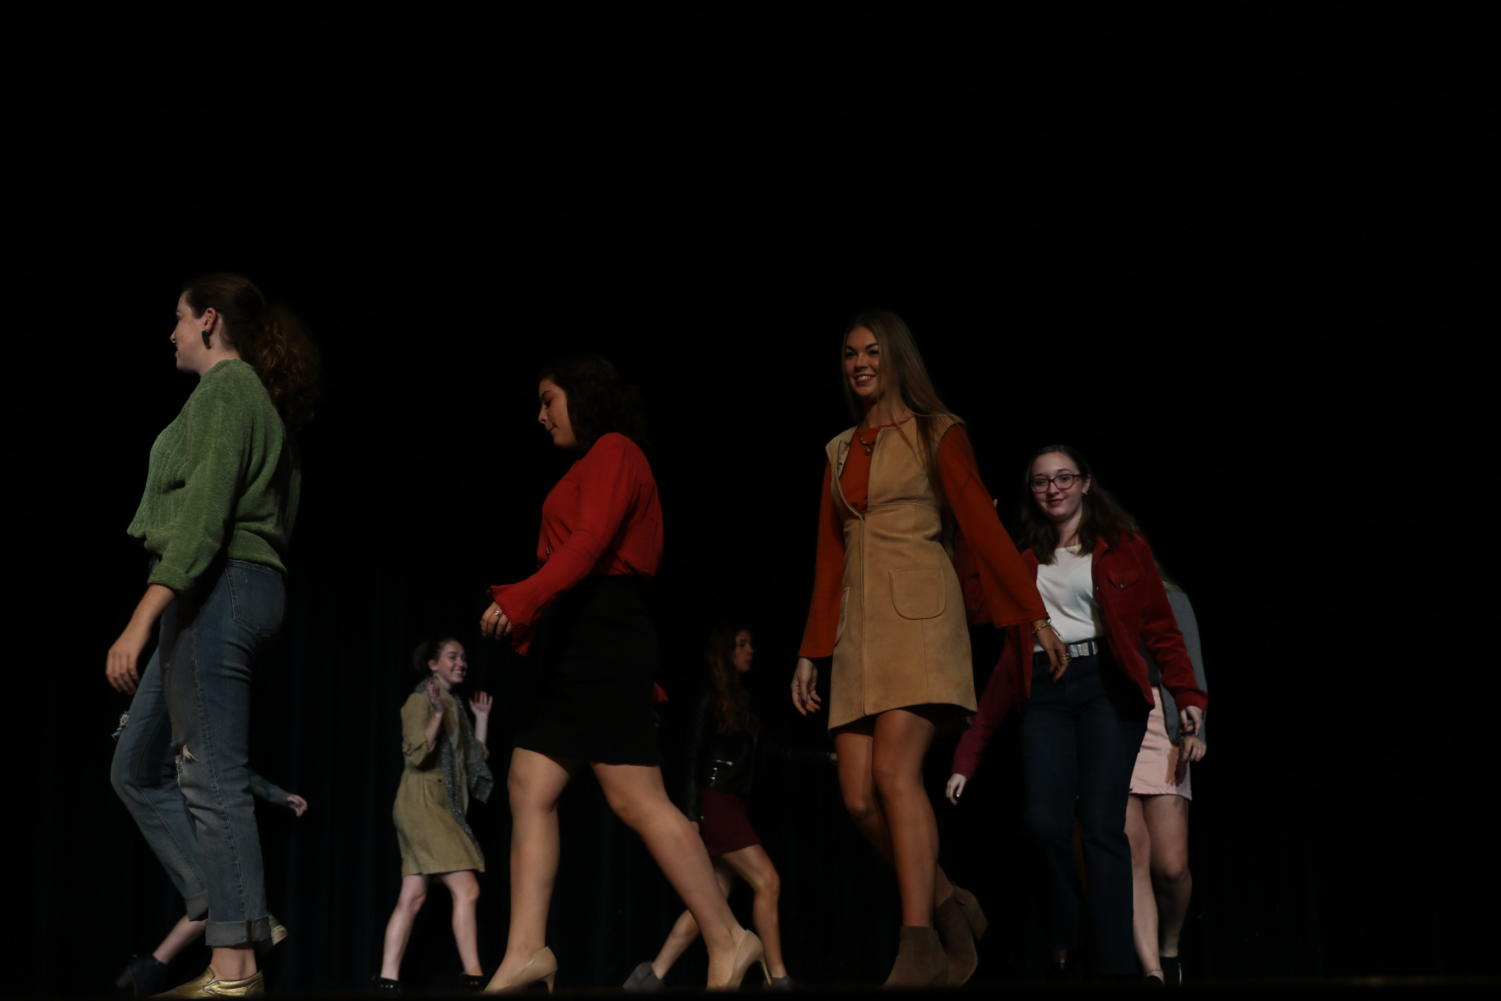 Models show off clothes in the Reber Center (Menna/TAB).